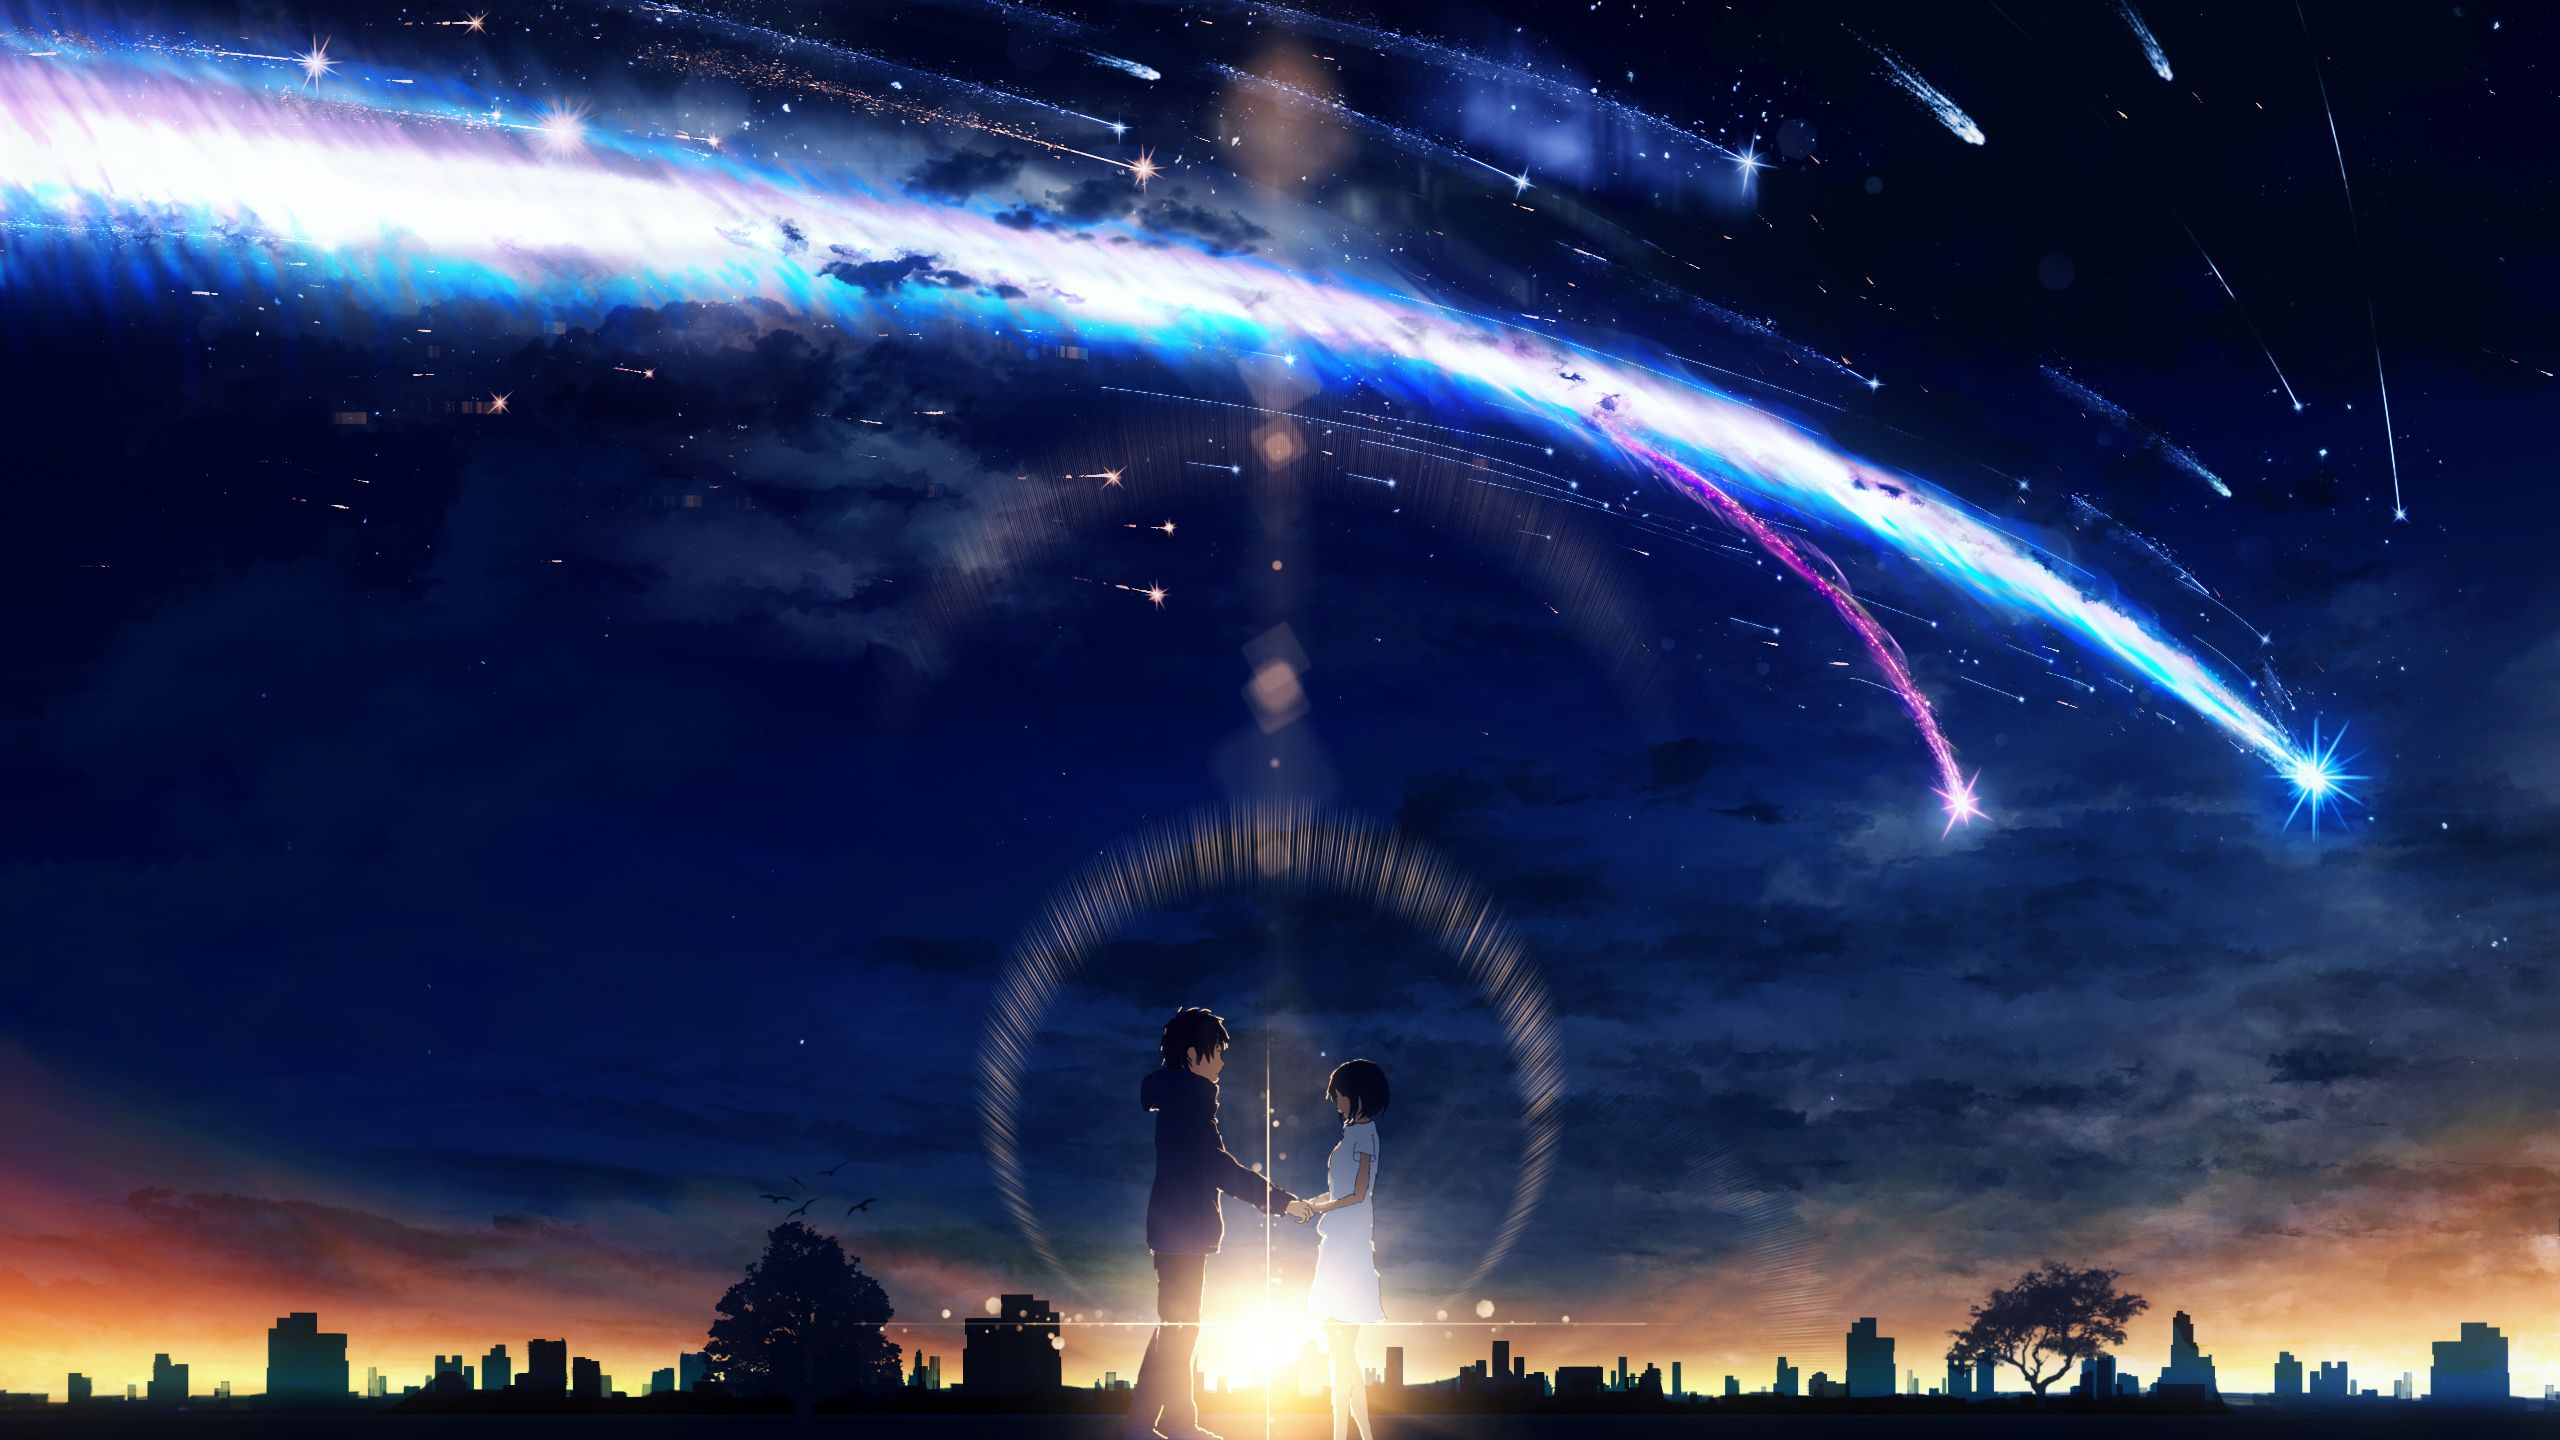 Your Name Anime Wallpapers   Top Your Name Anime Backgrounds 2560x1440